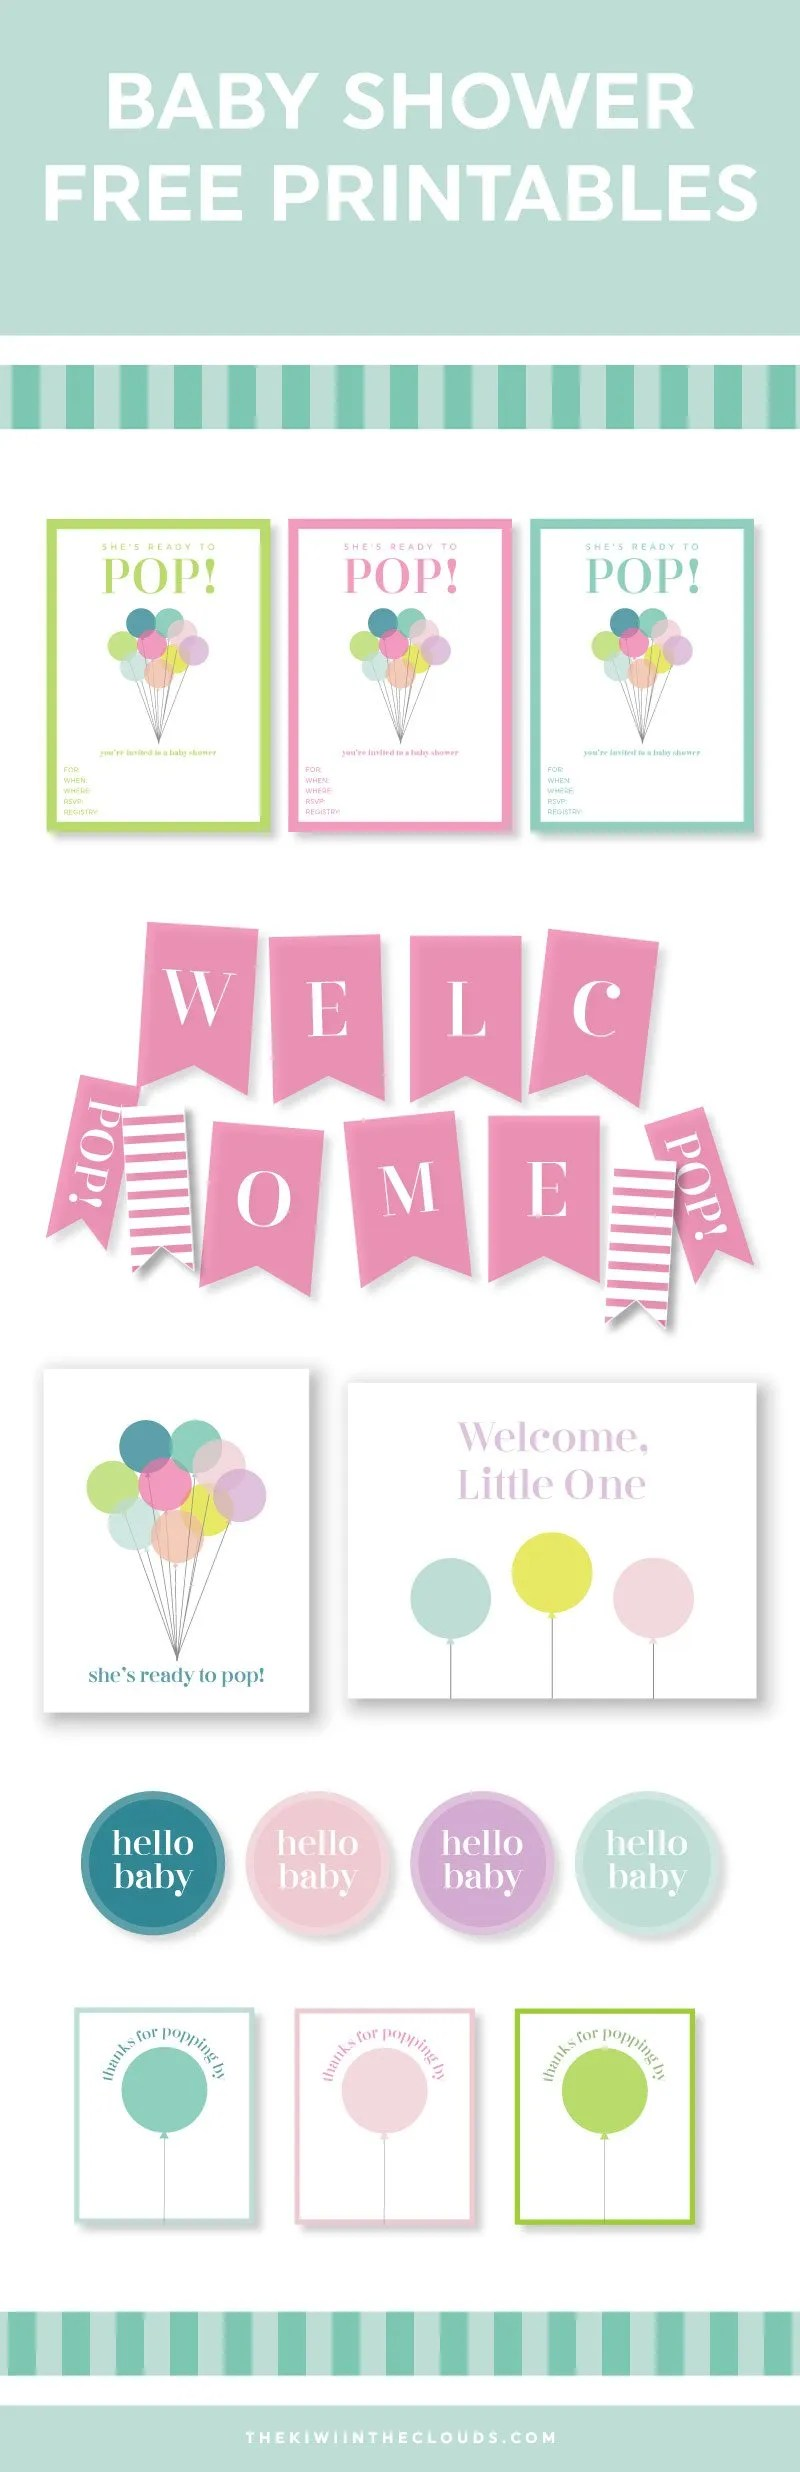 She's ready to Pop! Free printable set of invites, games & decor for a diy baby shower!